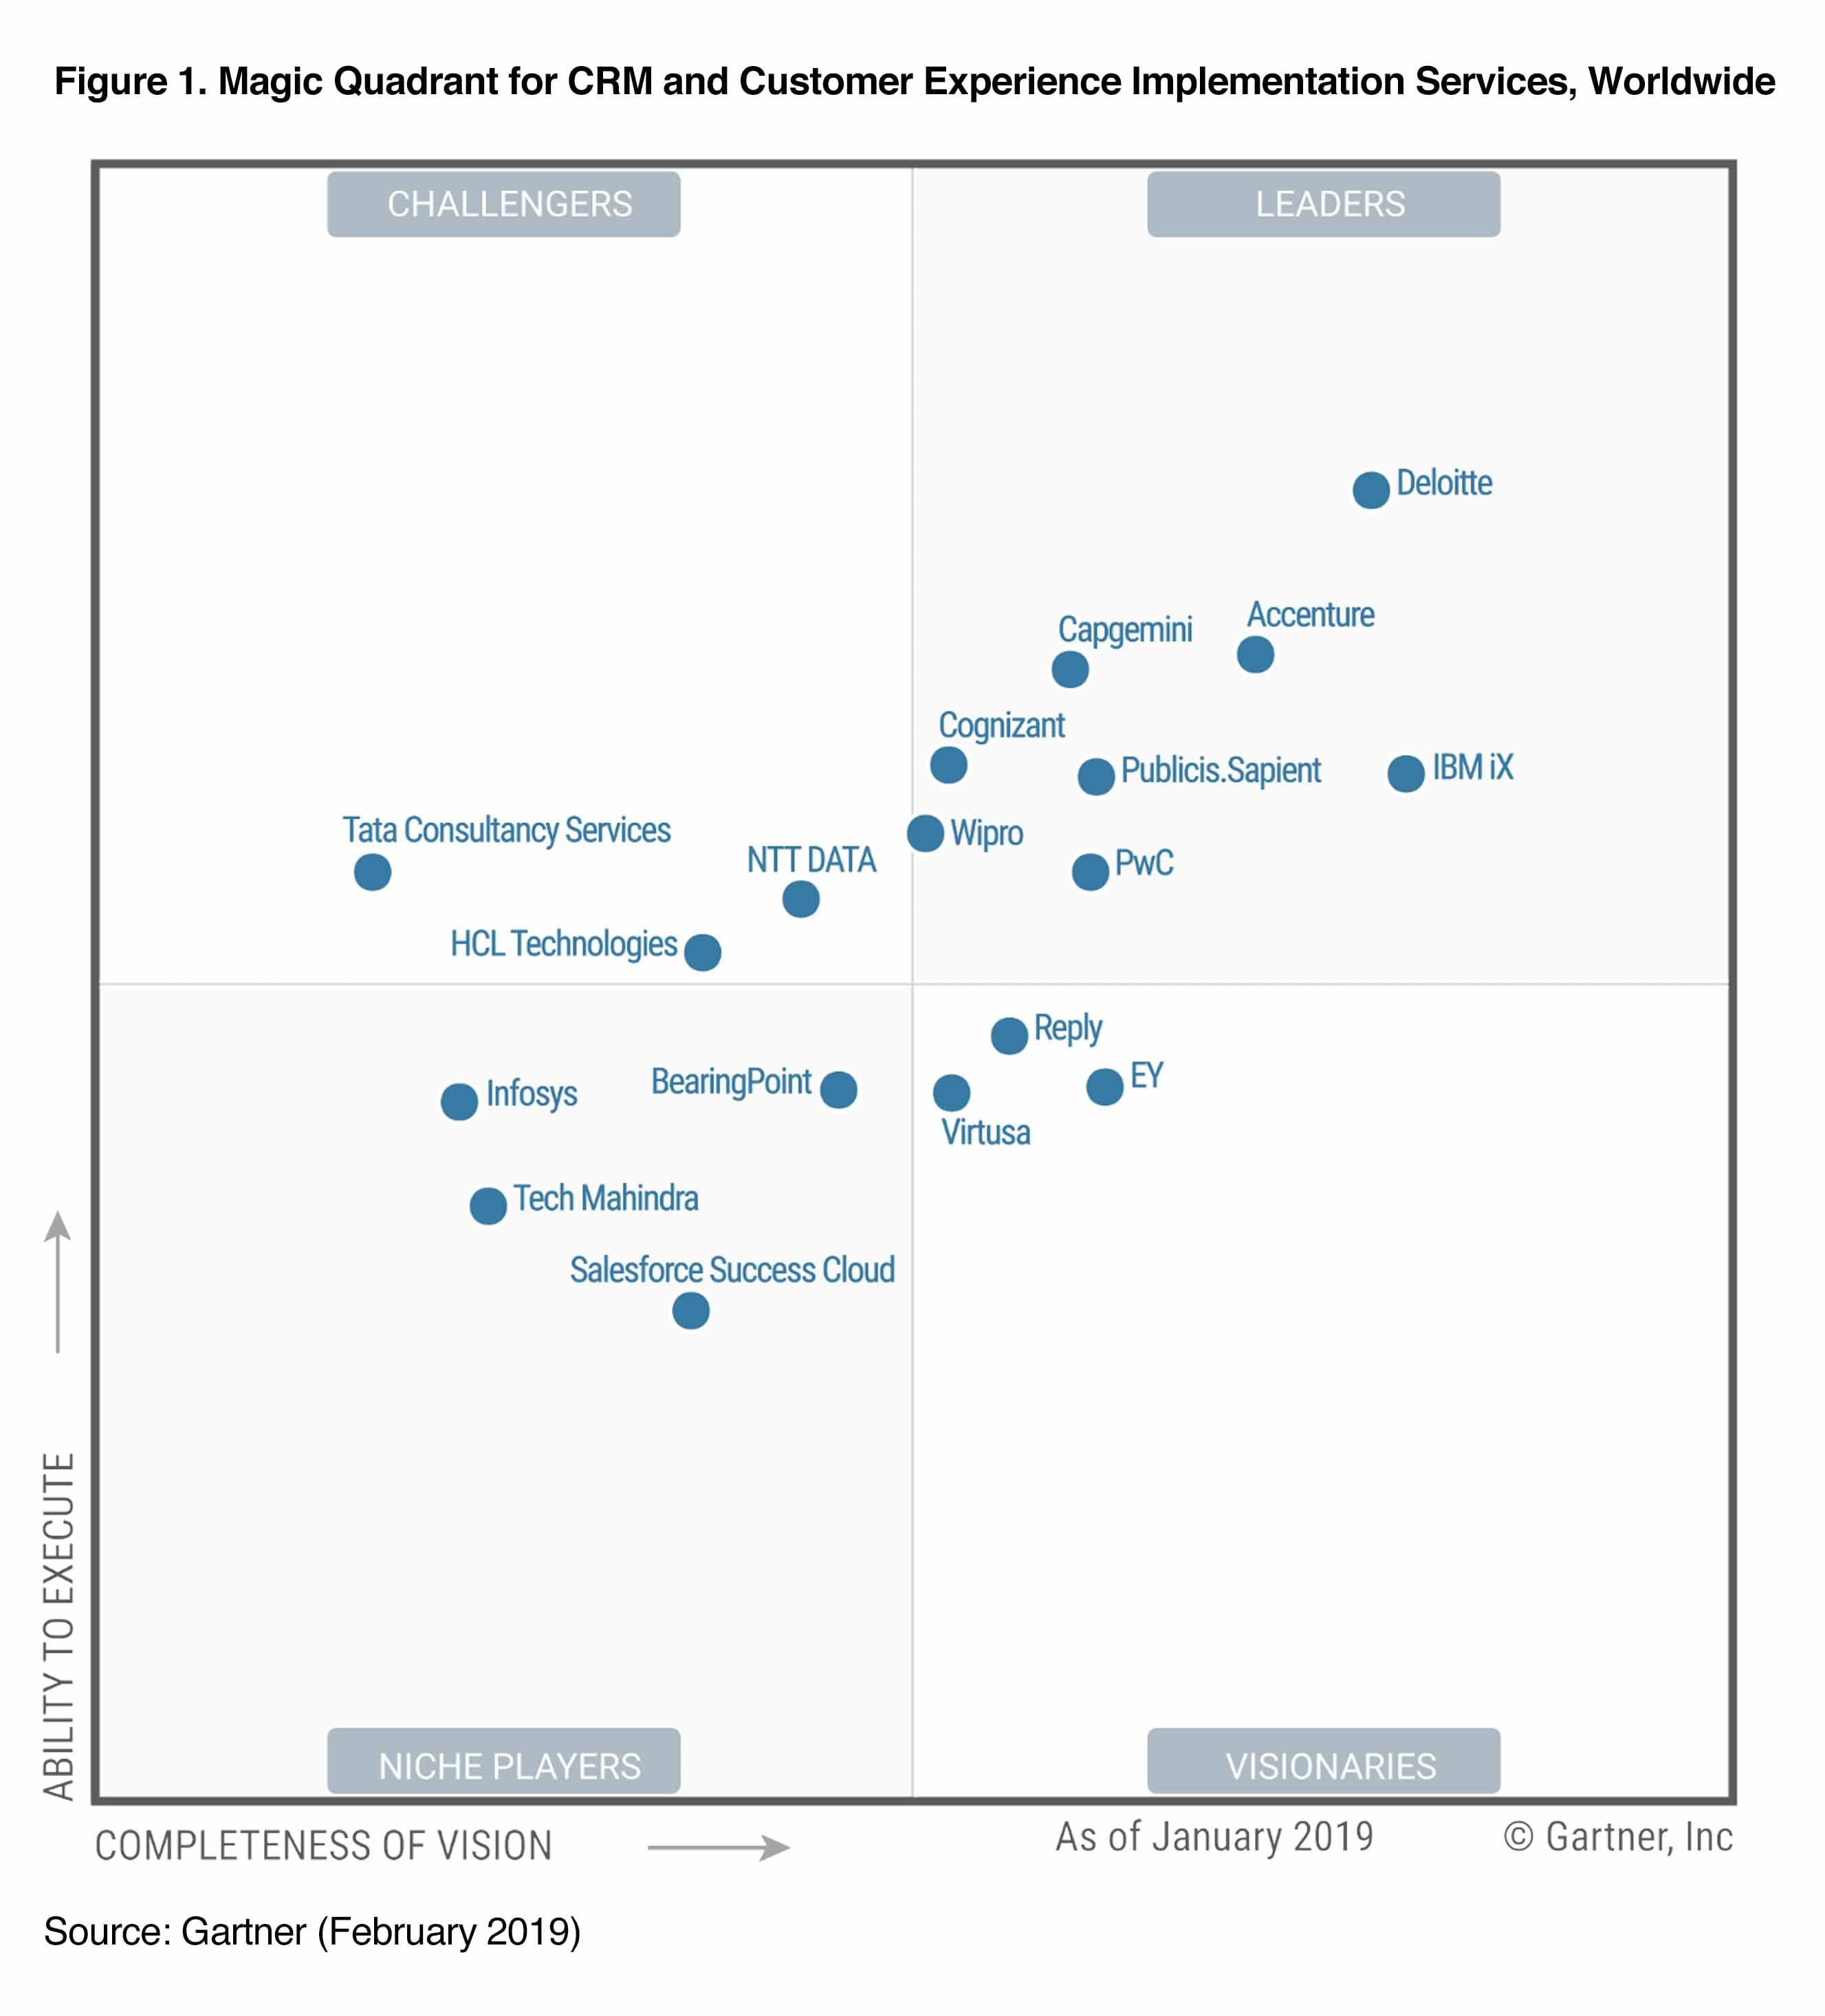 PwC positioned as a Leader in the Gartner's 2019 Magic Quadrant for